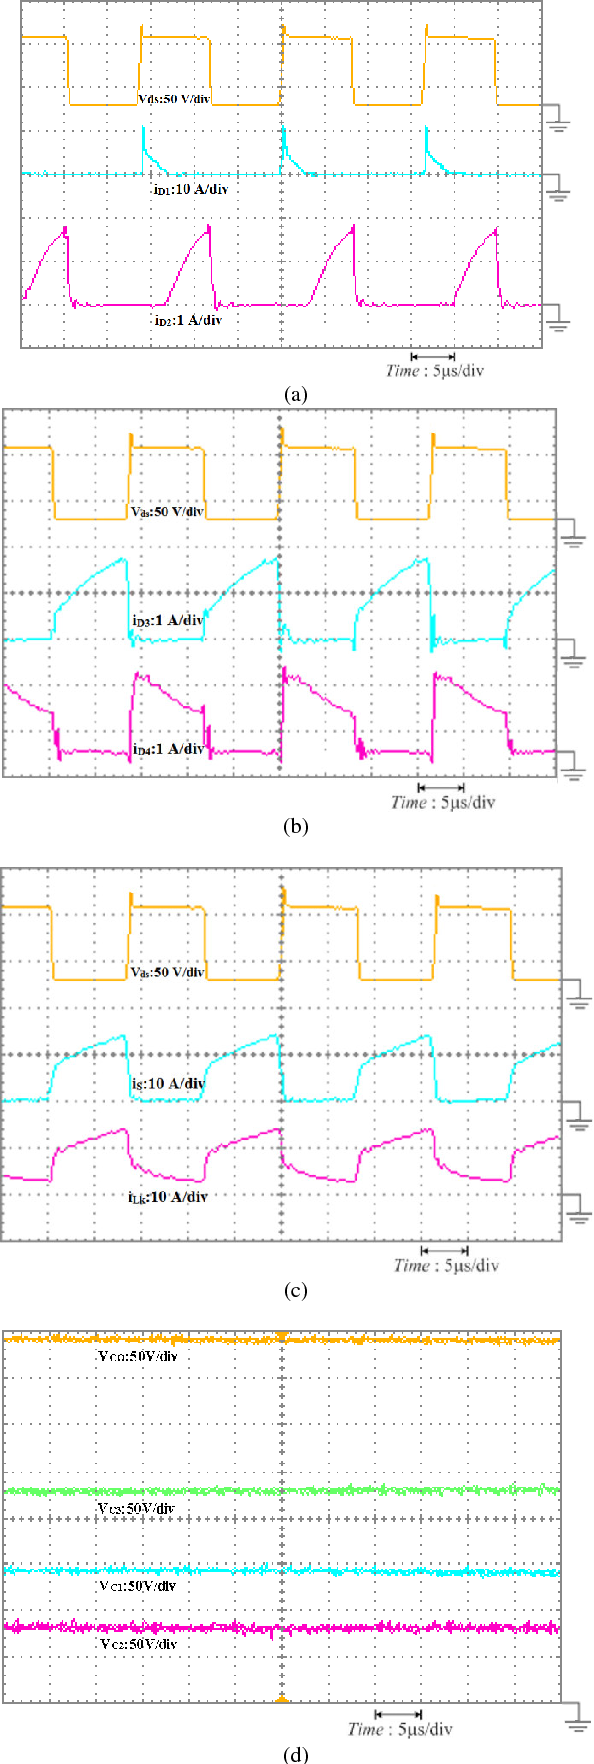 A Novel High Step Up Dc Converter Based On Integrating Coupled Designing Inductors Dcdc Converters Content From Power Inductor And Switched Capacitor Techniques For Renewable Energy Applications Semantic